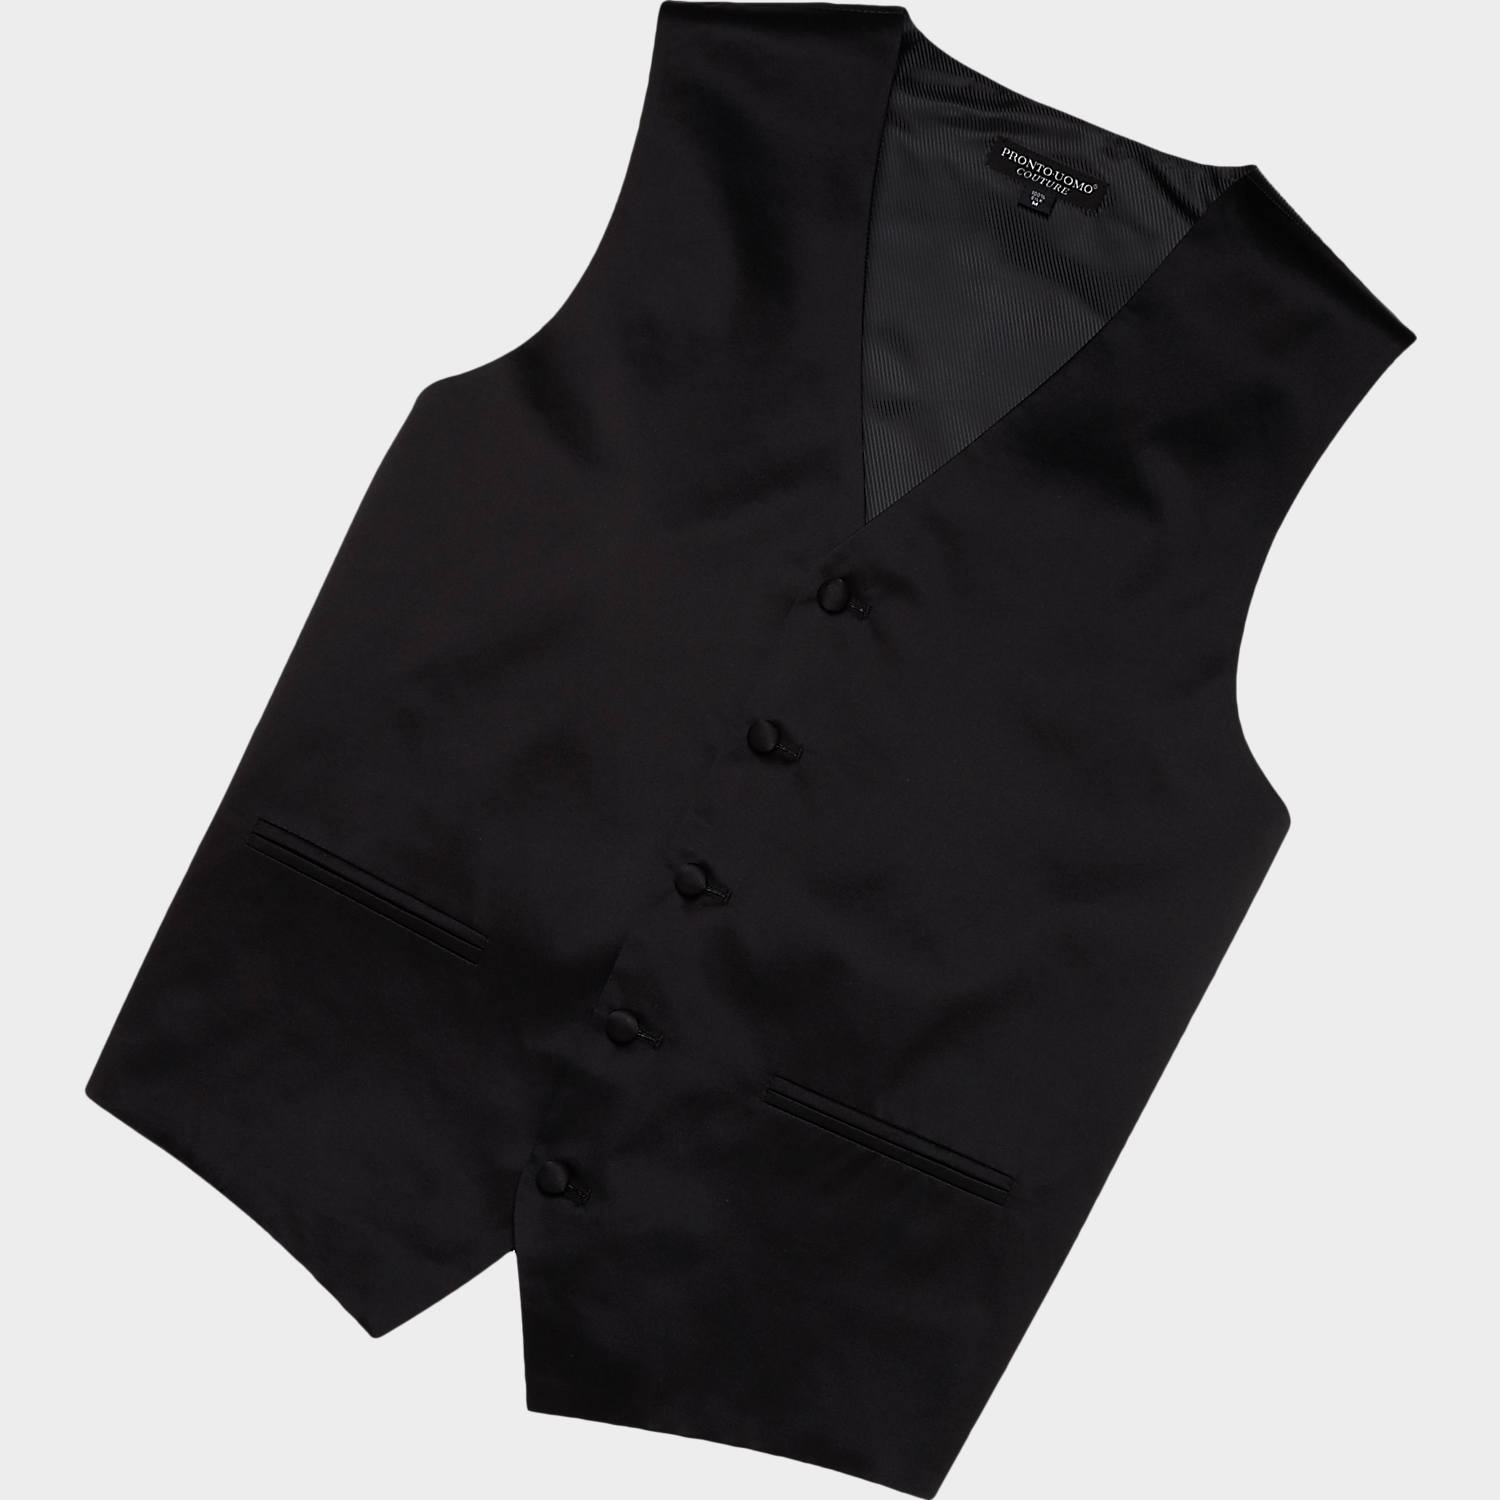 black vest pronto uomo black silk vest ZKFVOHJ